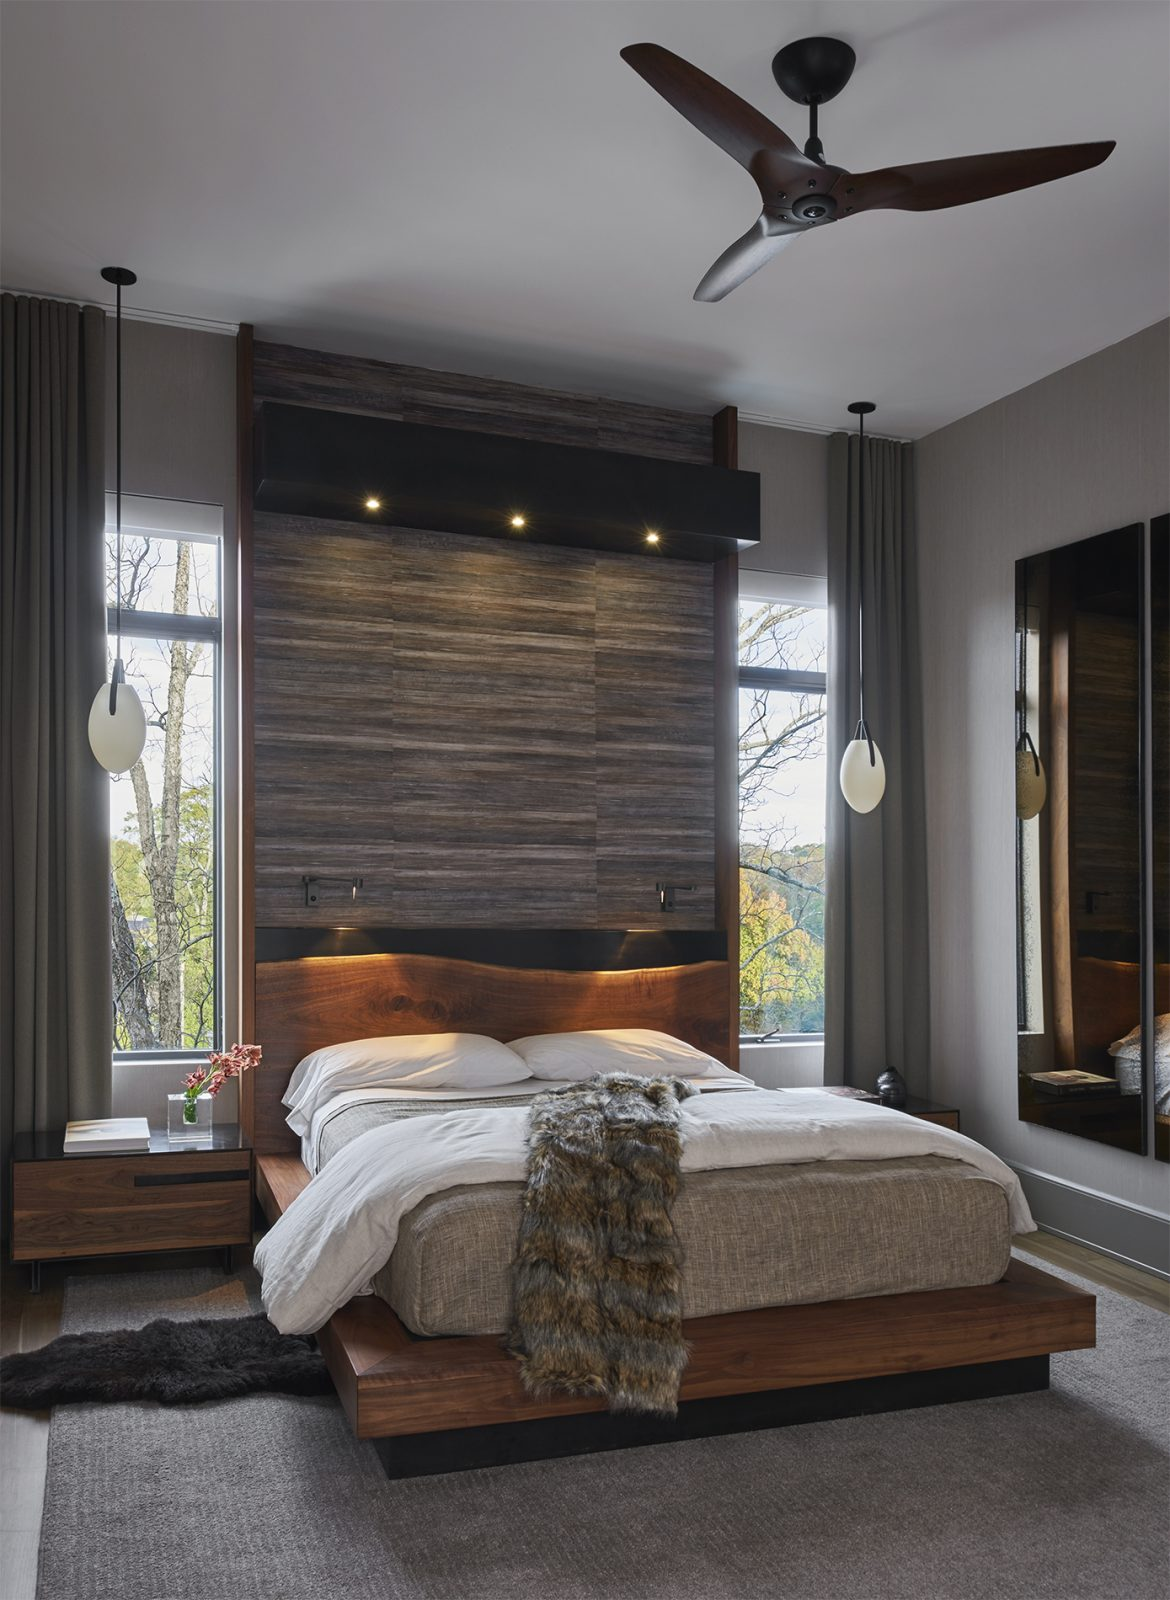 Be Amazed By These Bedroom Decor Ideas From Top Interior Designers